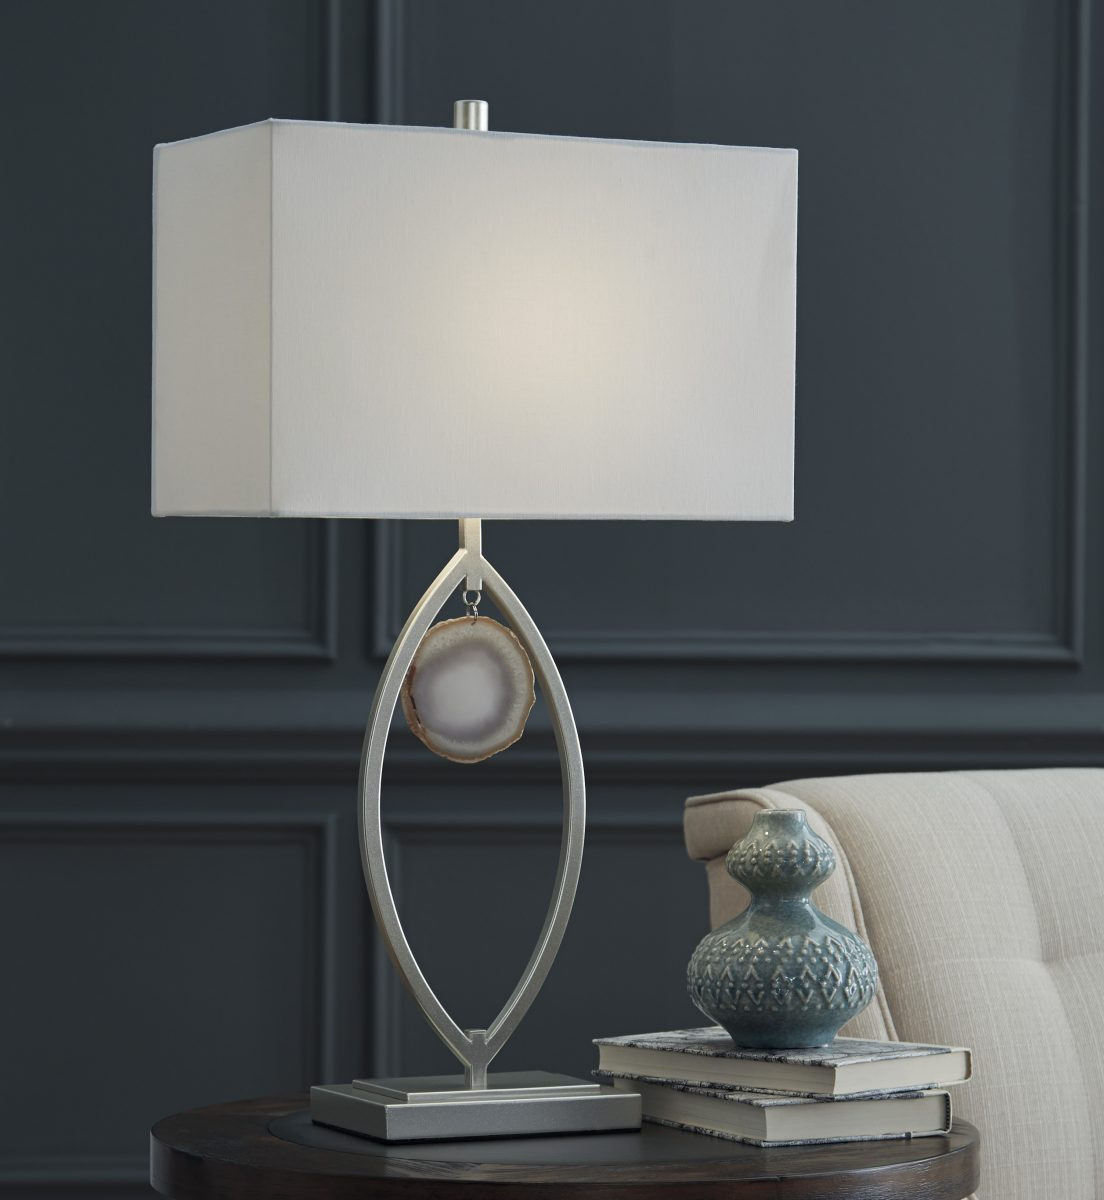 Ashley Lindsy Set Of 2 Table Lamps In Silver